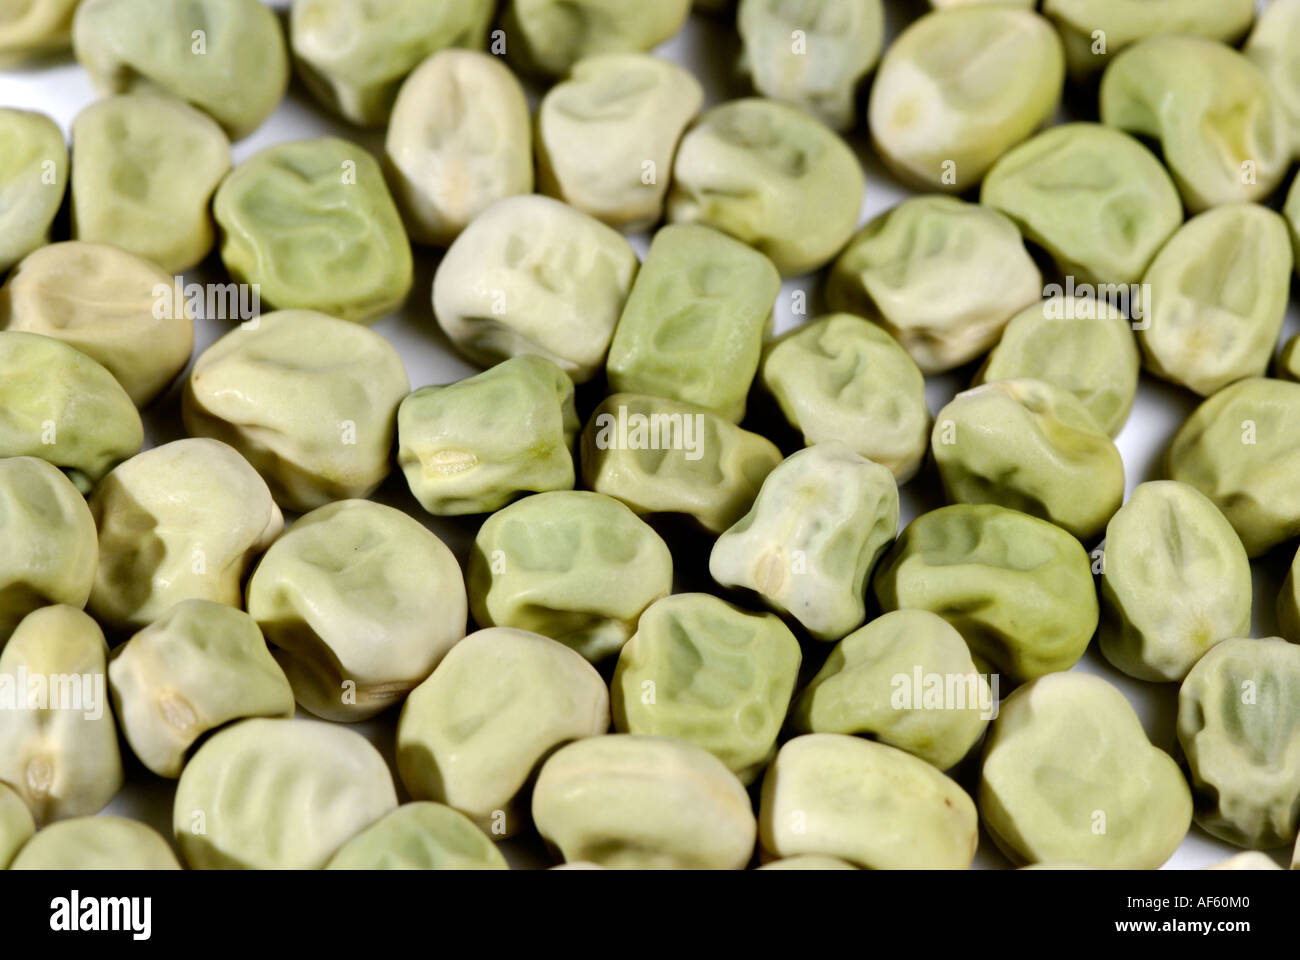 Green, wrinkled pea seeds, traits Gregor Mendel studied in his heredity experiments. Wrinkled trait results from a gene mutation - Stock Image